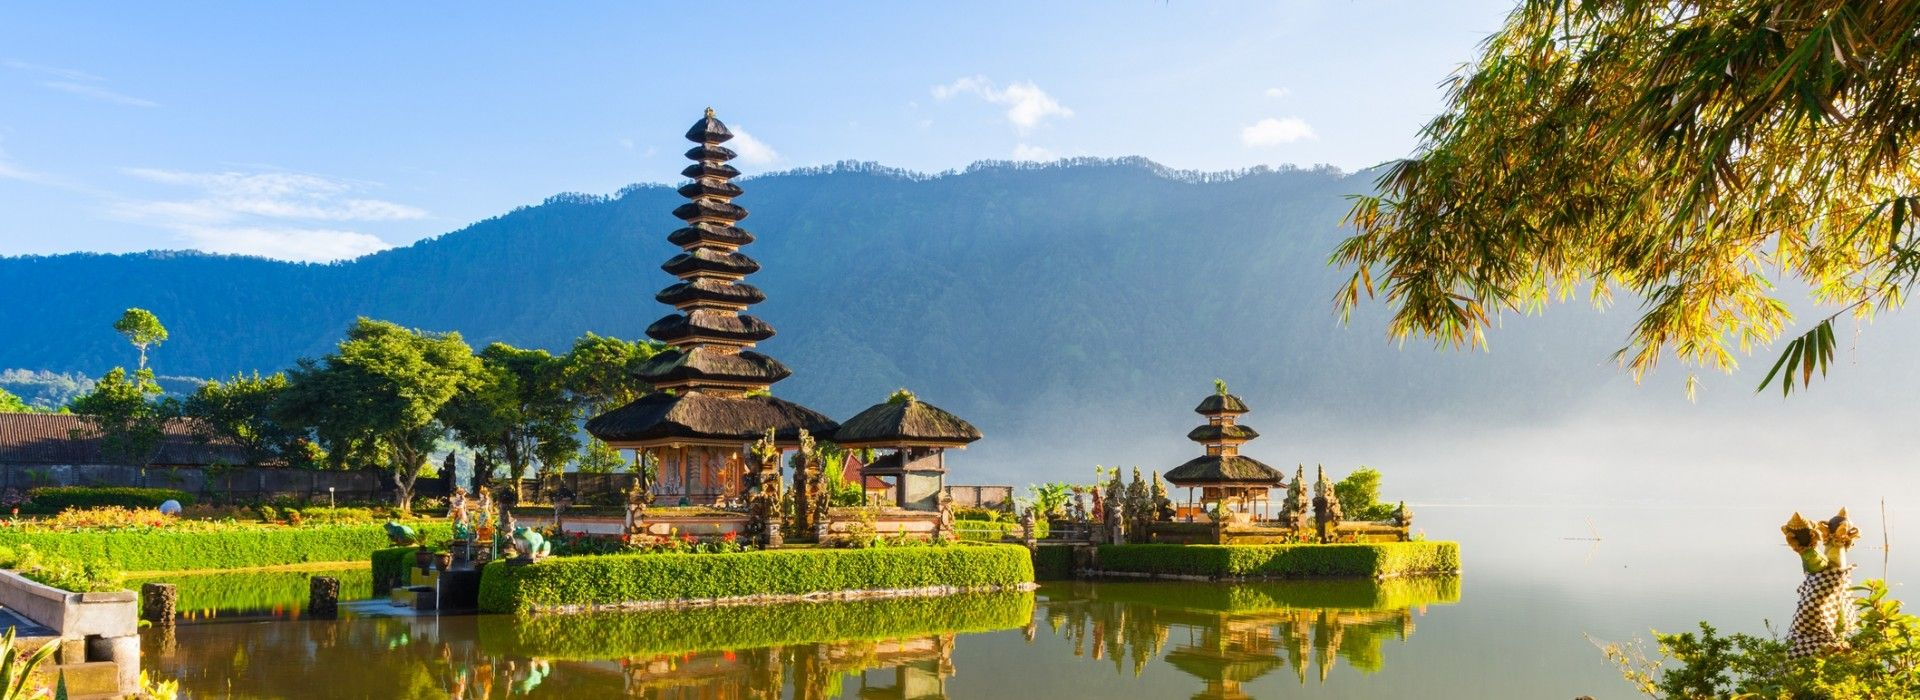 Cultural, religious and historic sites Tours in Indonesia